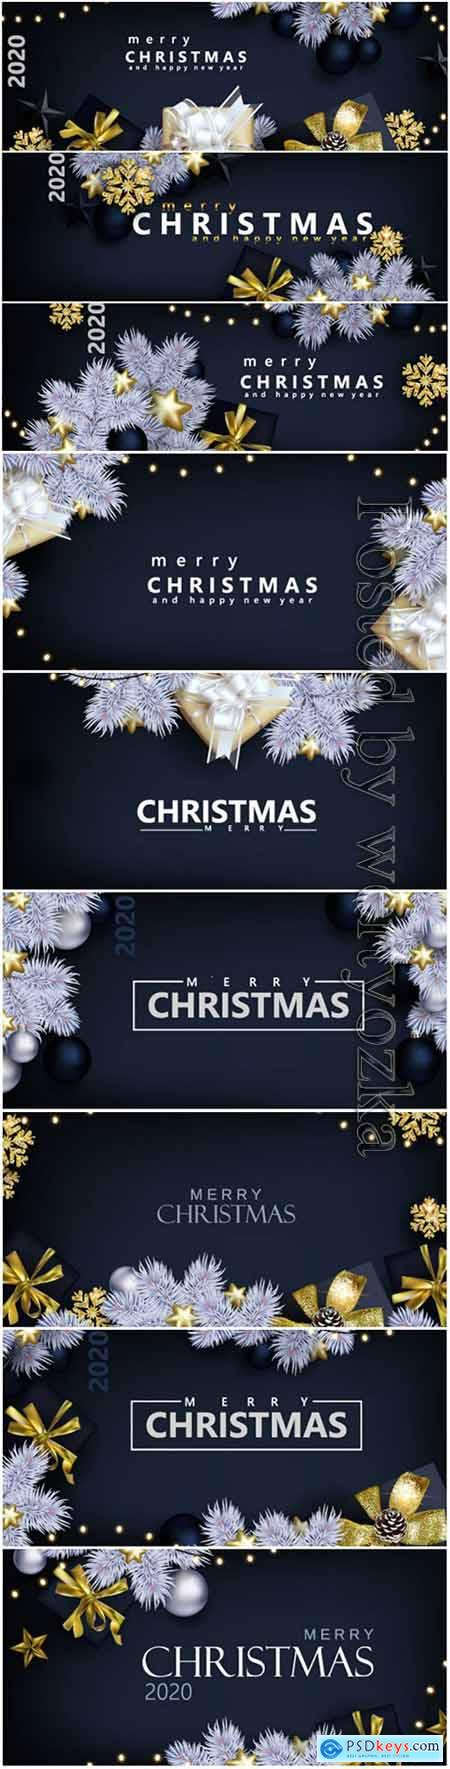 Christmas banner with white spruce on black